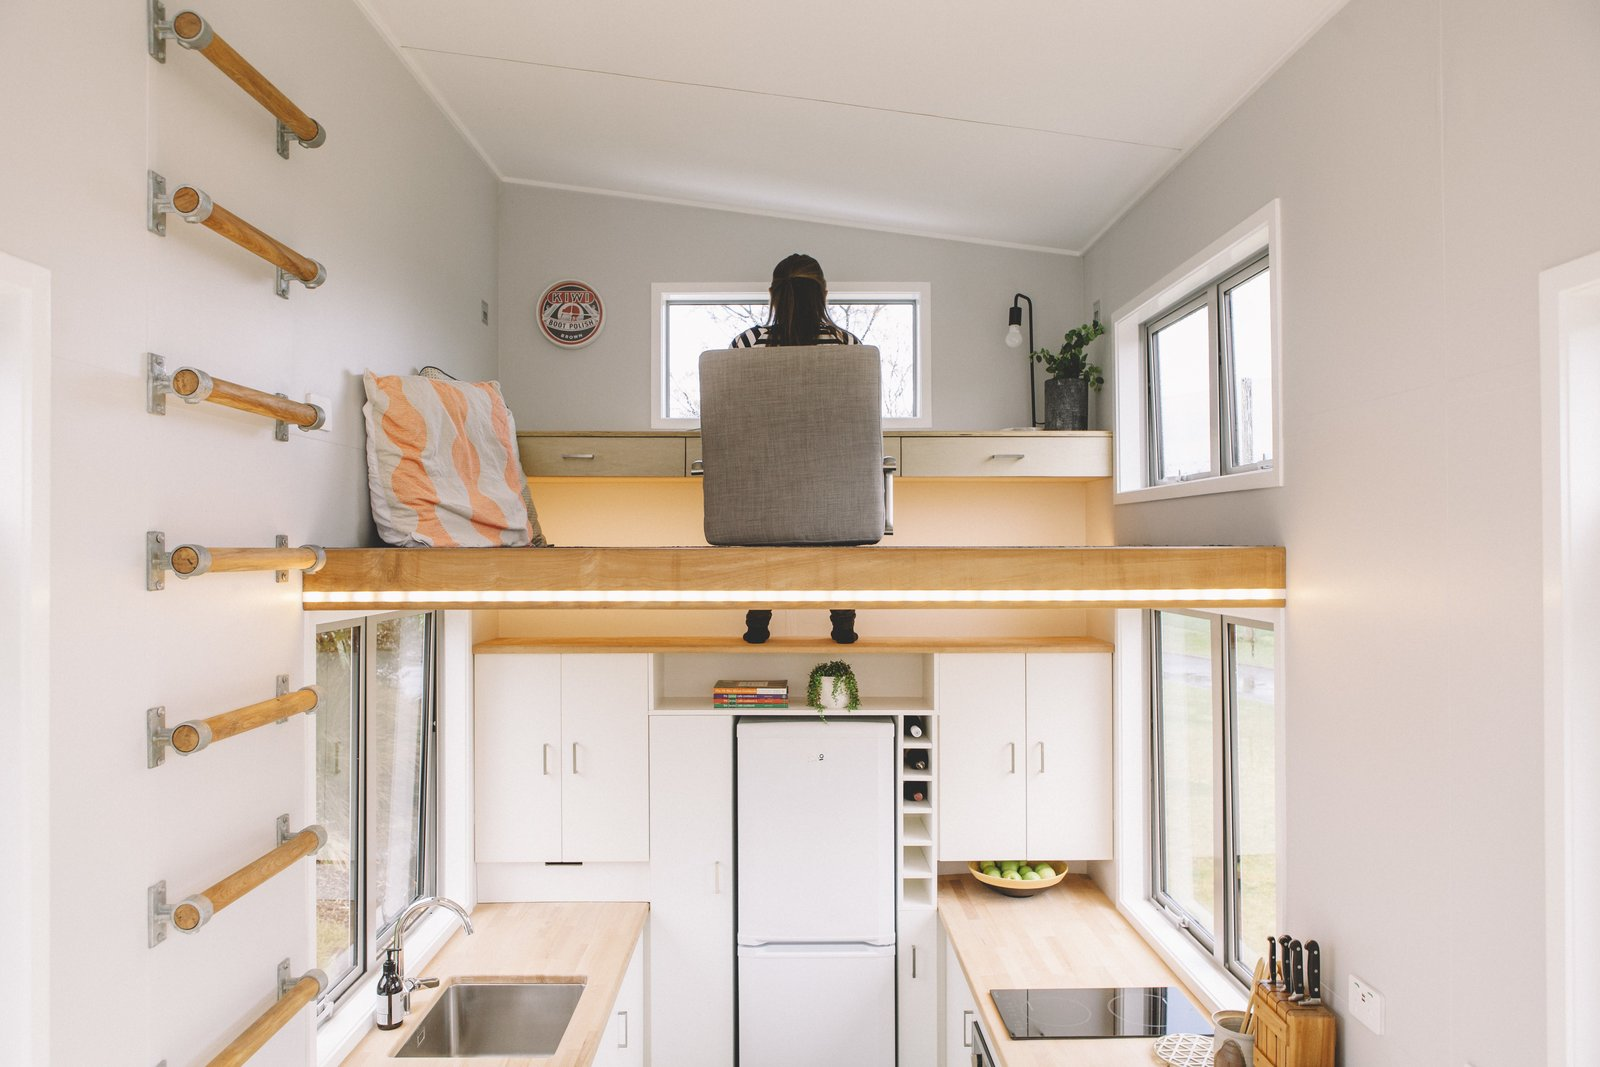 This Ingenious Tiny House Saves Space With A Lofted Office And Underfloor Storage Dwell